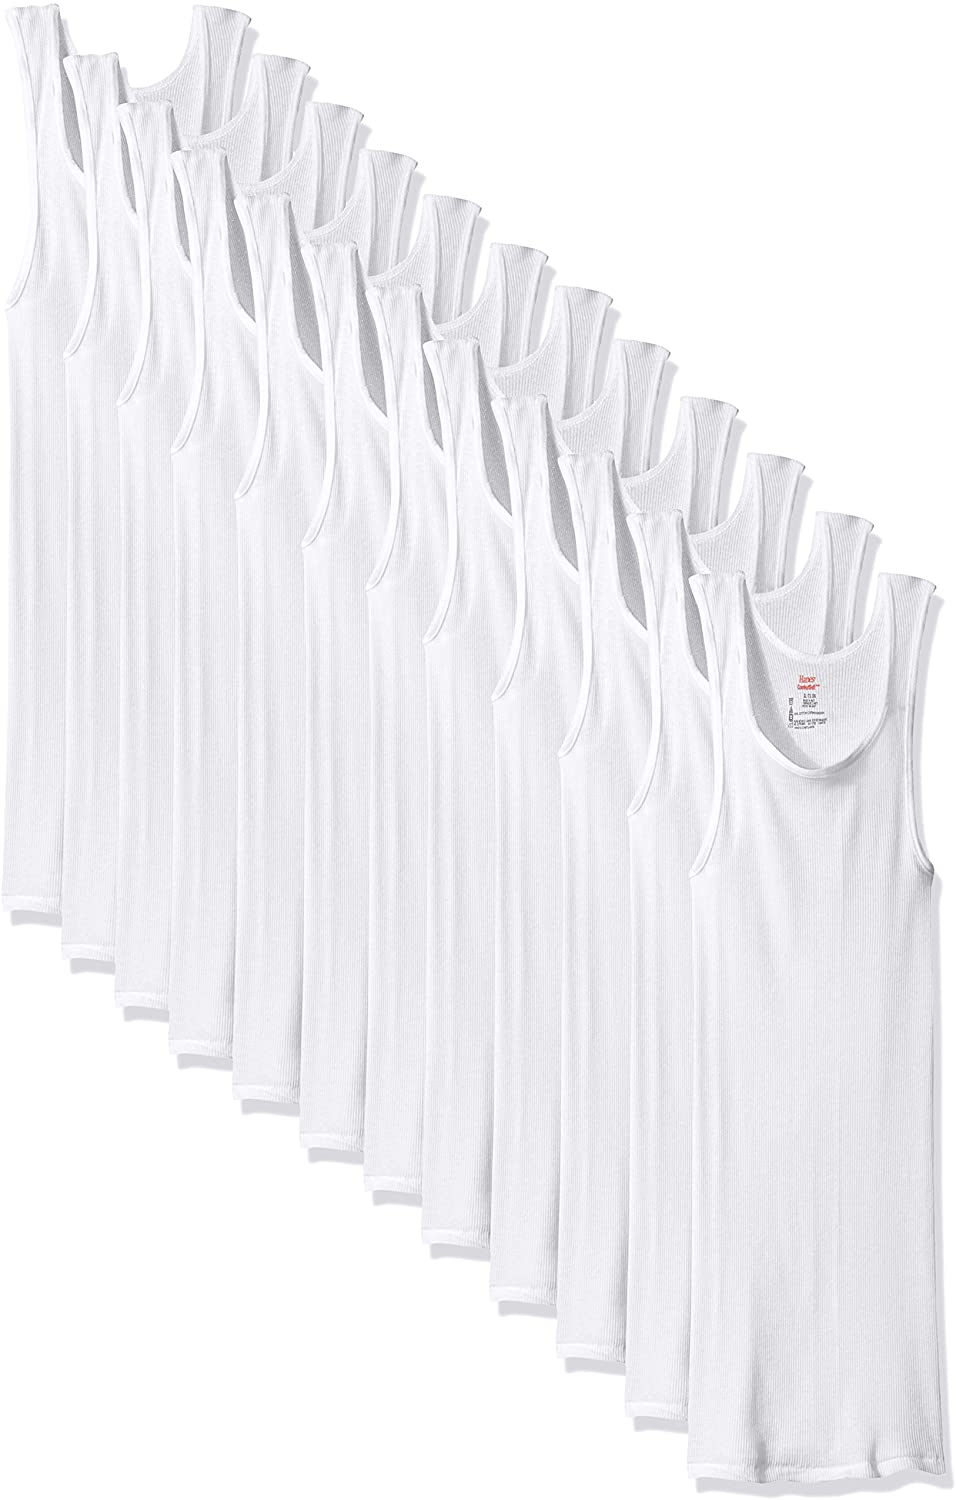 Classier: Buy Hanes Hanes Men's 6-Pack Comfort Soft Moisture Wicking Tagless Tanks